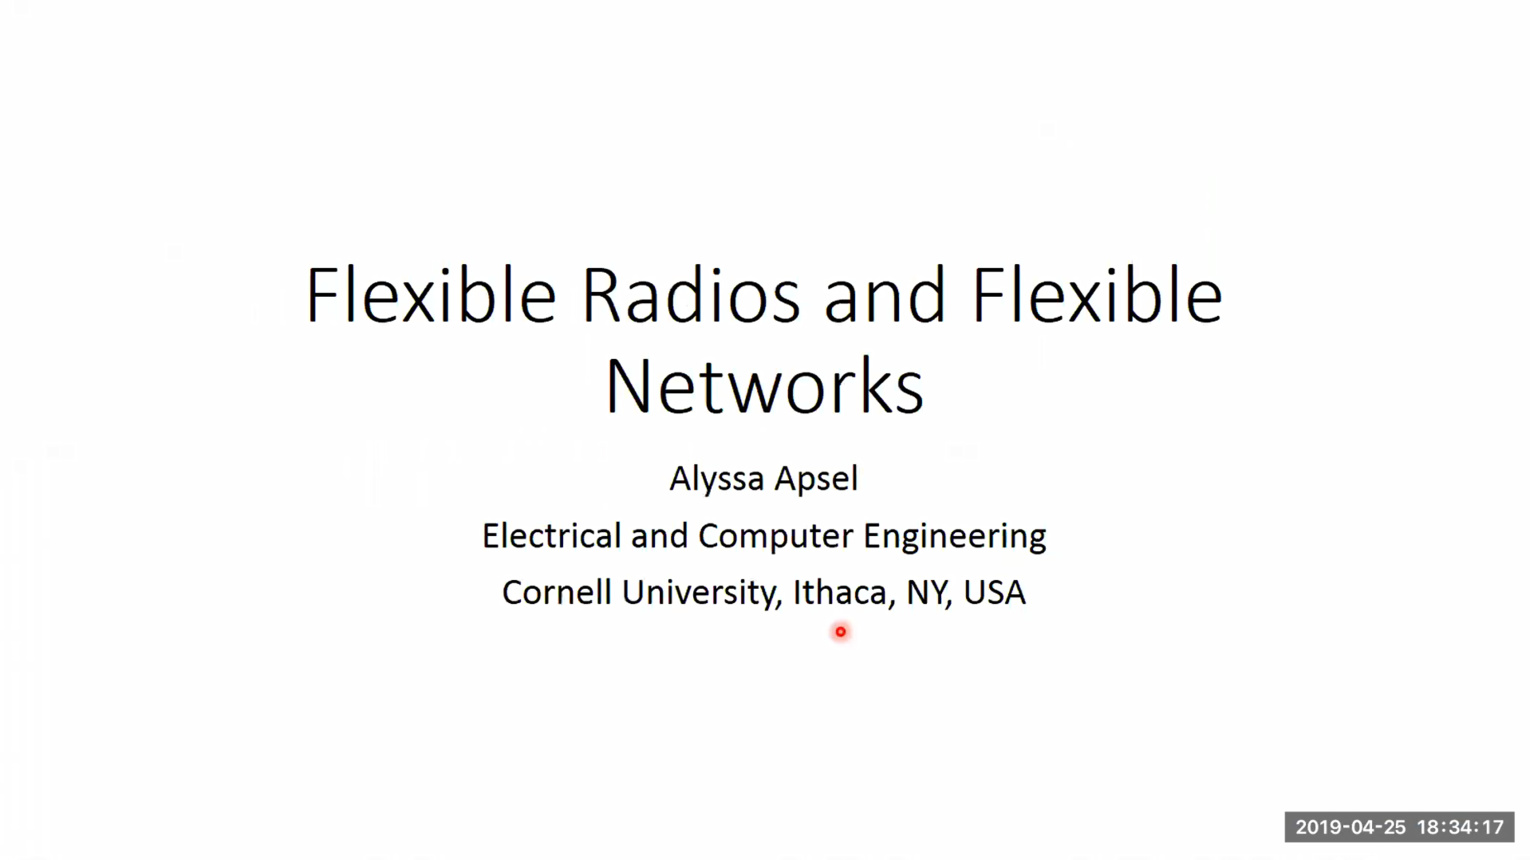 Flexible Radios and Flexible Networks